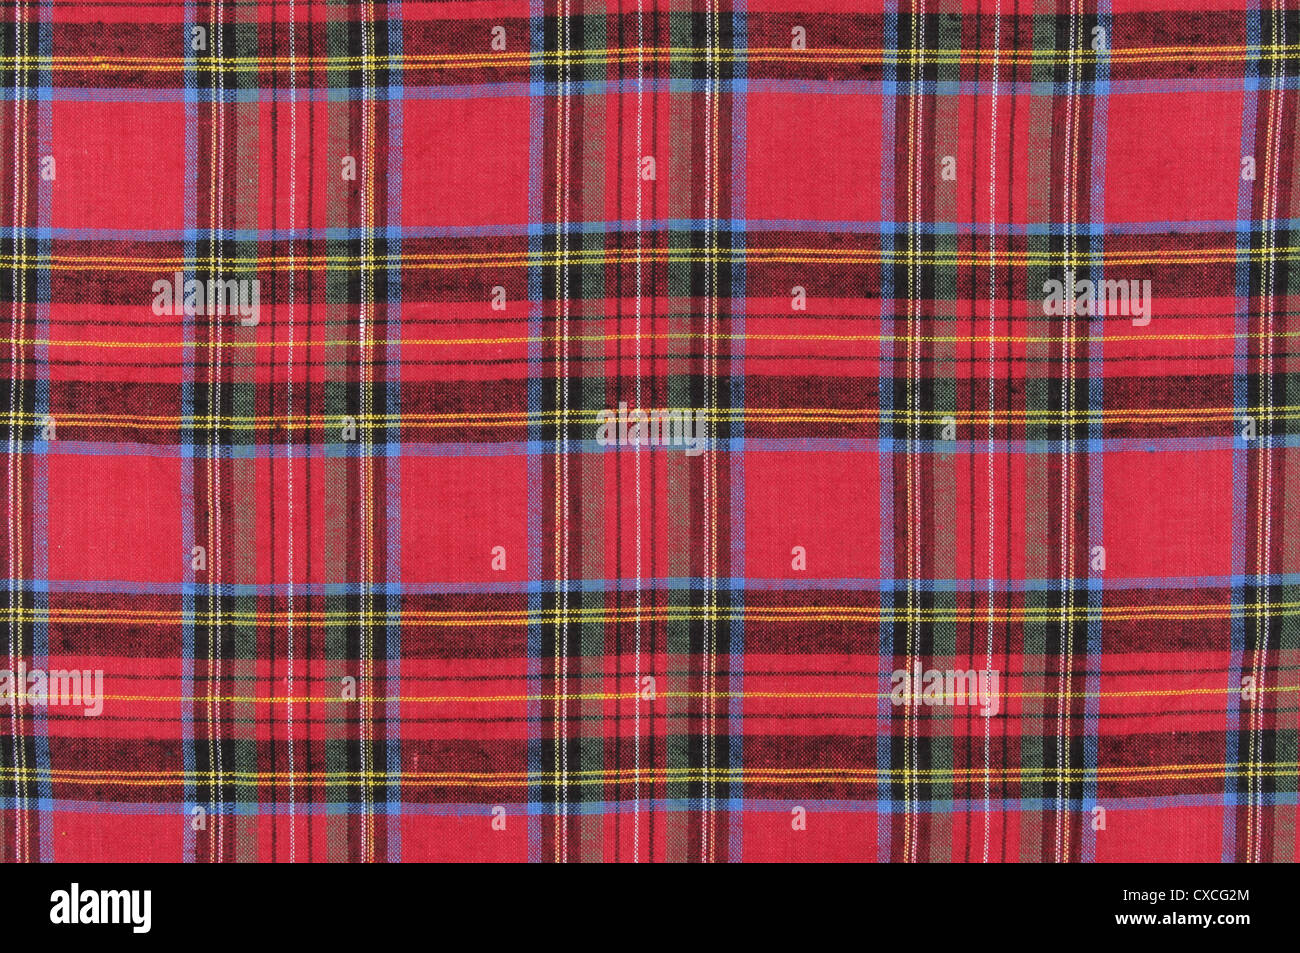 Tartan material as a background and texture - Stock Image